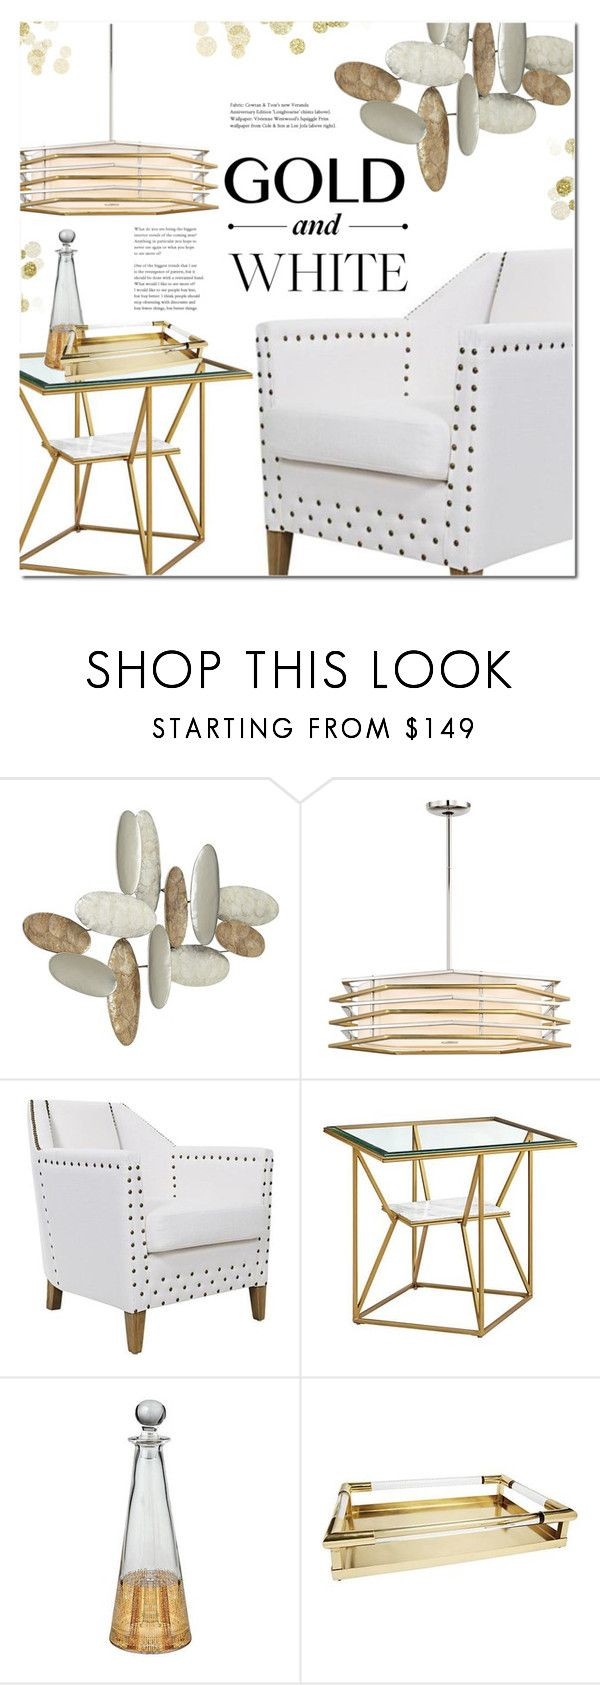 """""""Gold and white"""" by paculi ❤ liked on Polyvore featuring George Kovacs by Minka, Home and decor"""